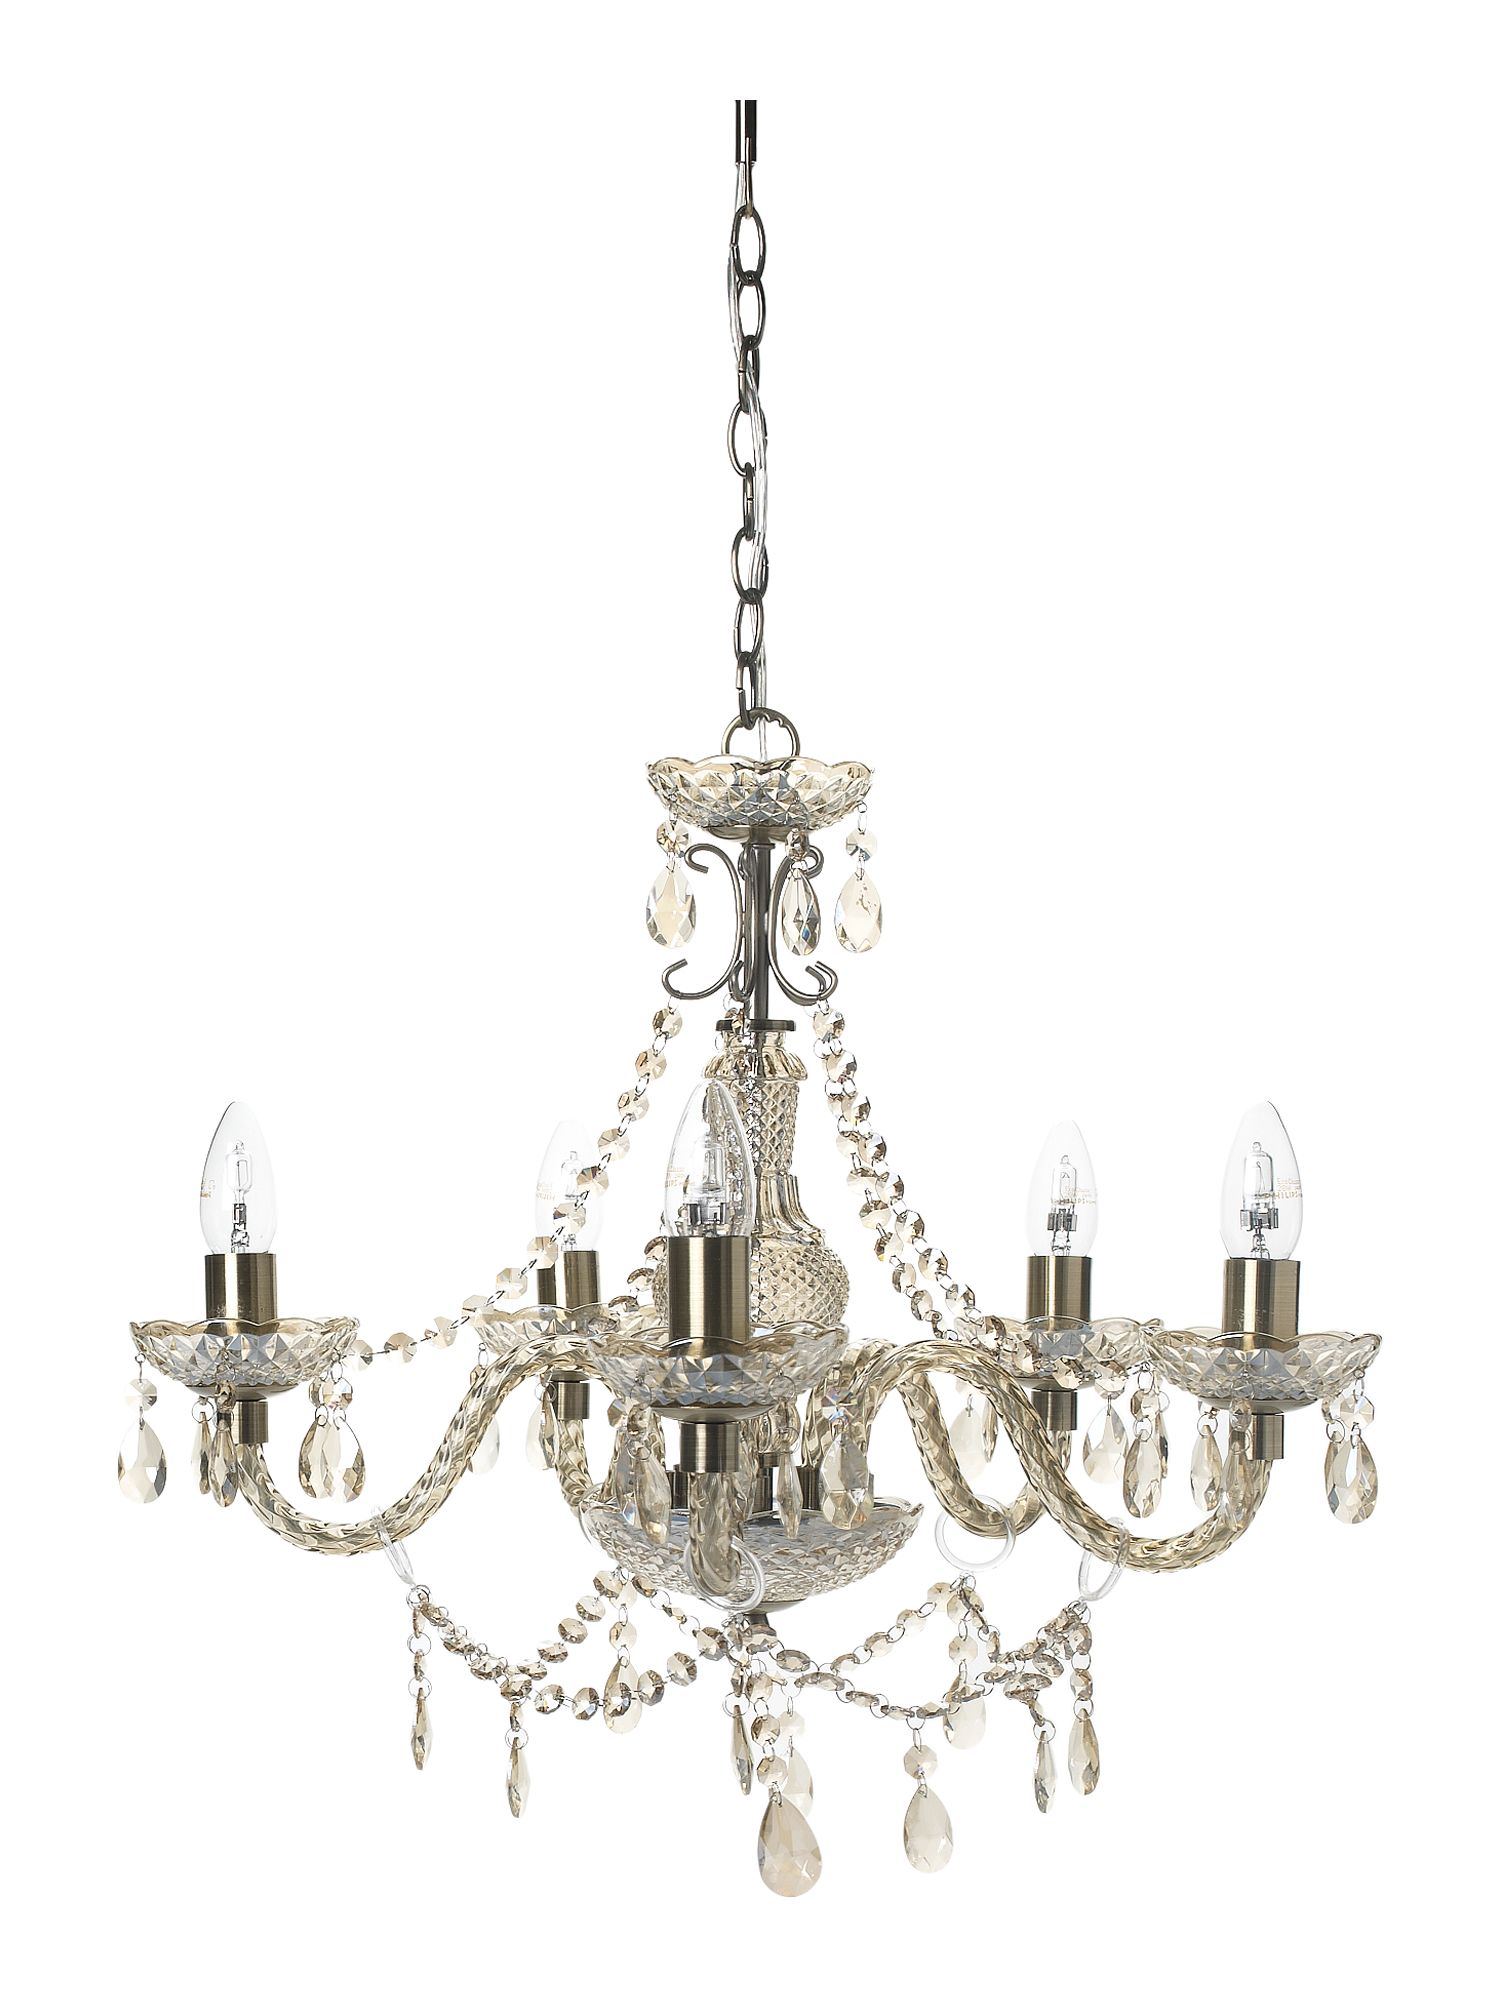 Shabby Chic Laurent 5 Arm Chandelier House of Fraser